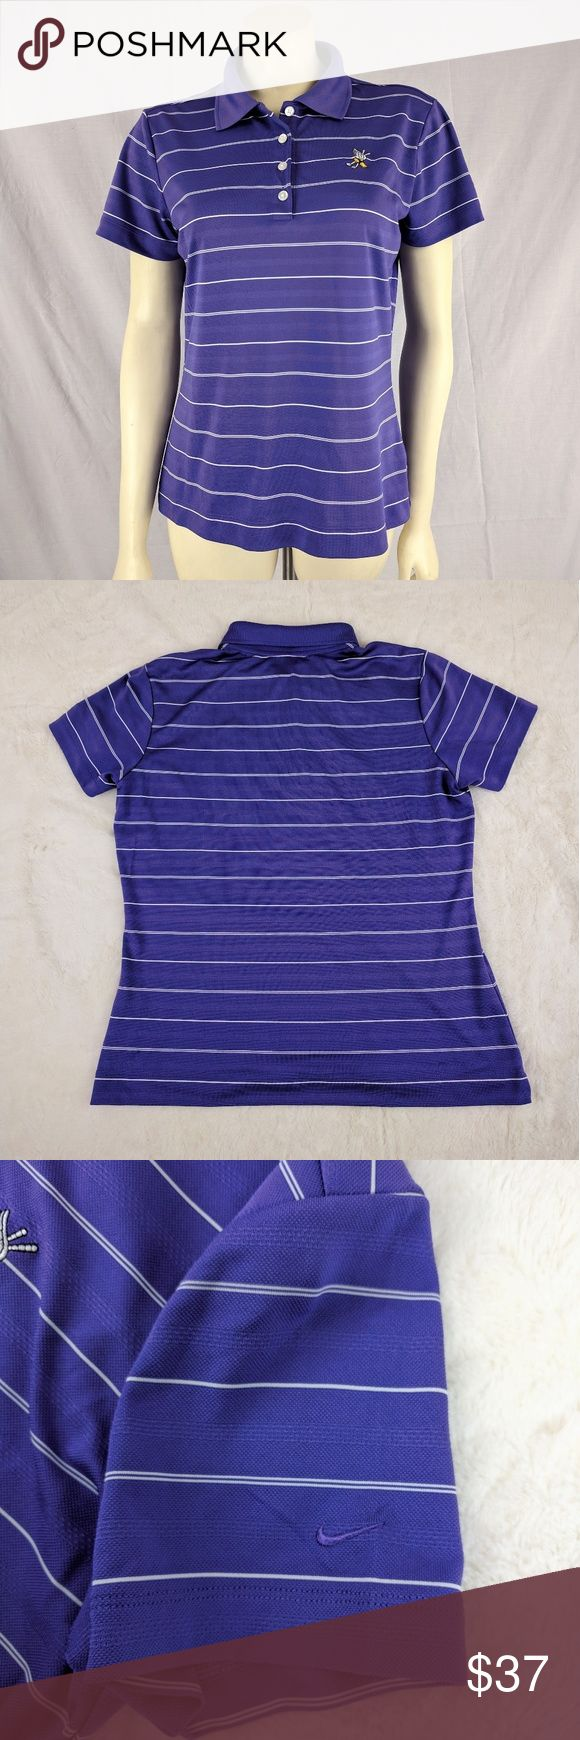 NWT Nike Women's Golf T-shirt Purple striped NWOT retails $55  Nike Golf Dri-fit T-shirt.  Size: Medium  Color: stripped Purple and small white lines  Short sleeves. Machine washable.  Bust: 40in-44in  Length: 23.5in   Thanks for stopping by. Nike Tops Tees - Short Sleeve